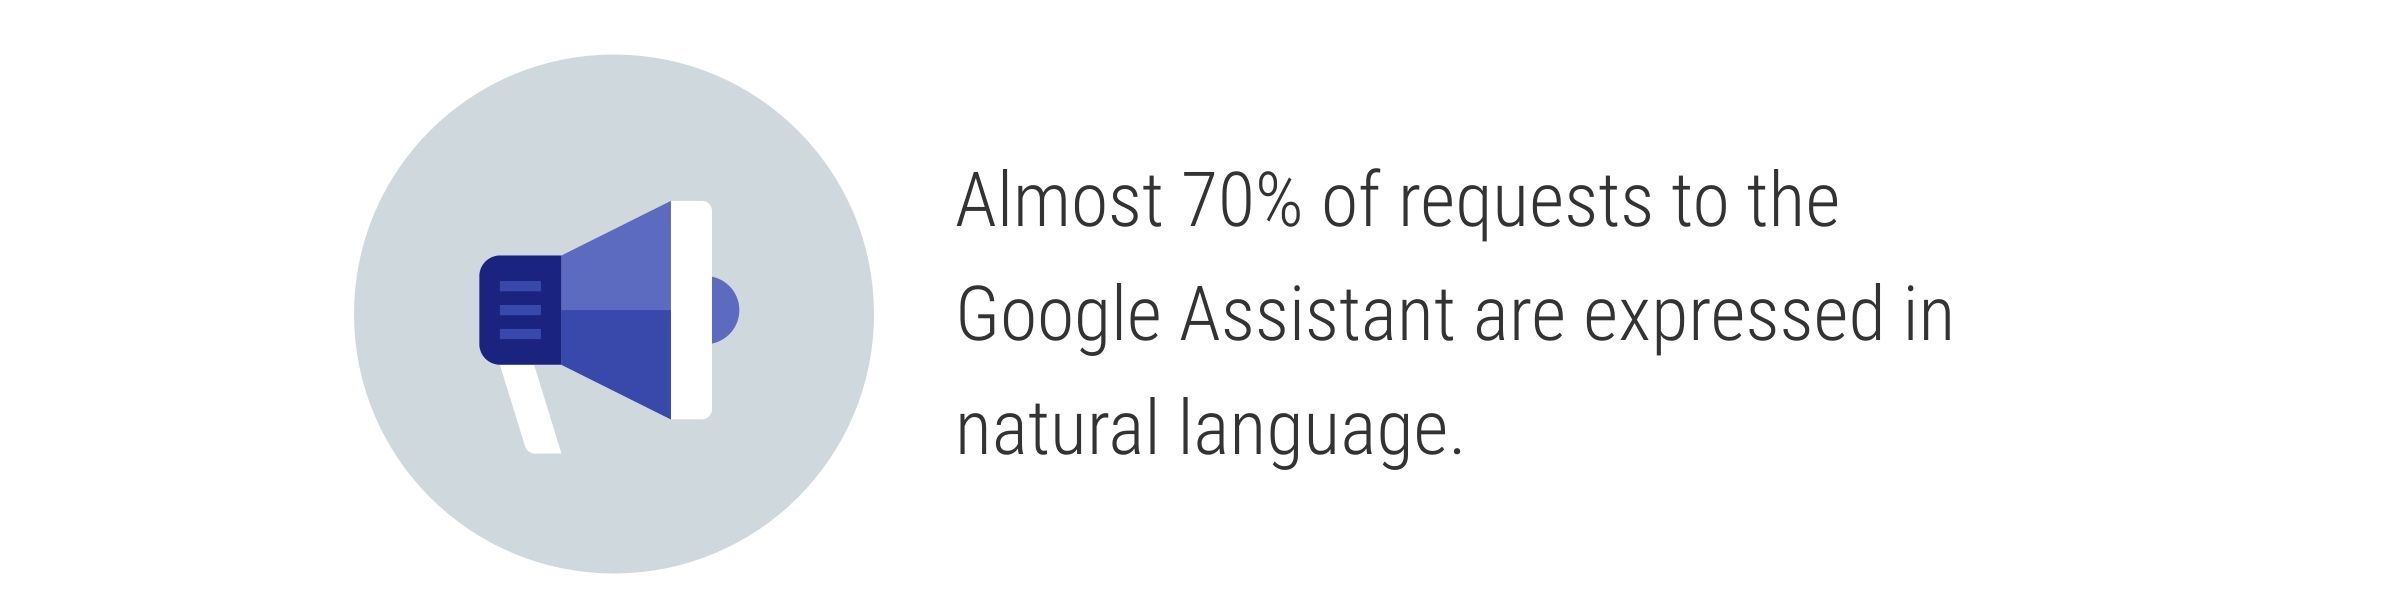 google-assistant-search.jpg